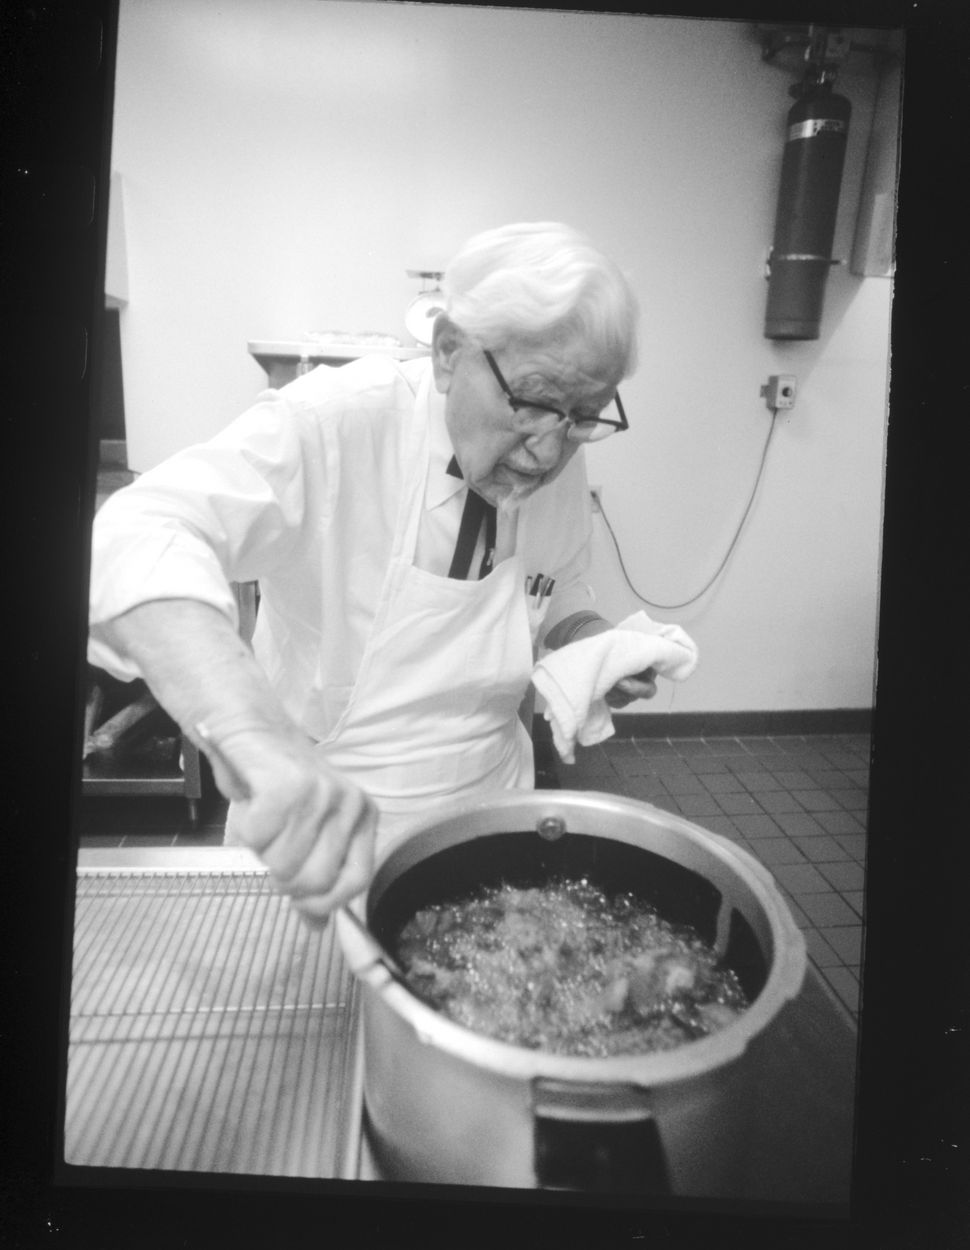 Colonel Sanders oversees his famous Kentucky Fried Chicken as it cooks in the kitchen (circa 1970).